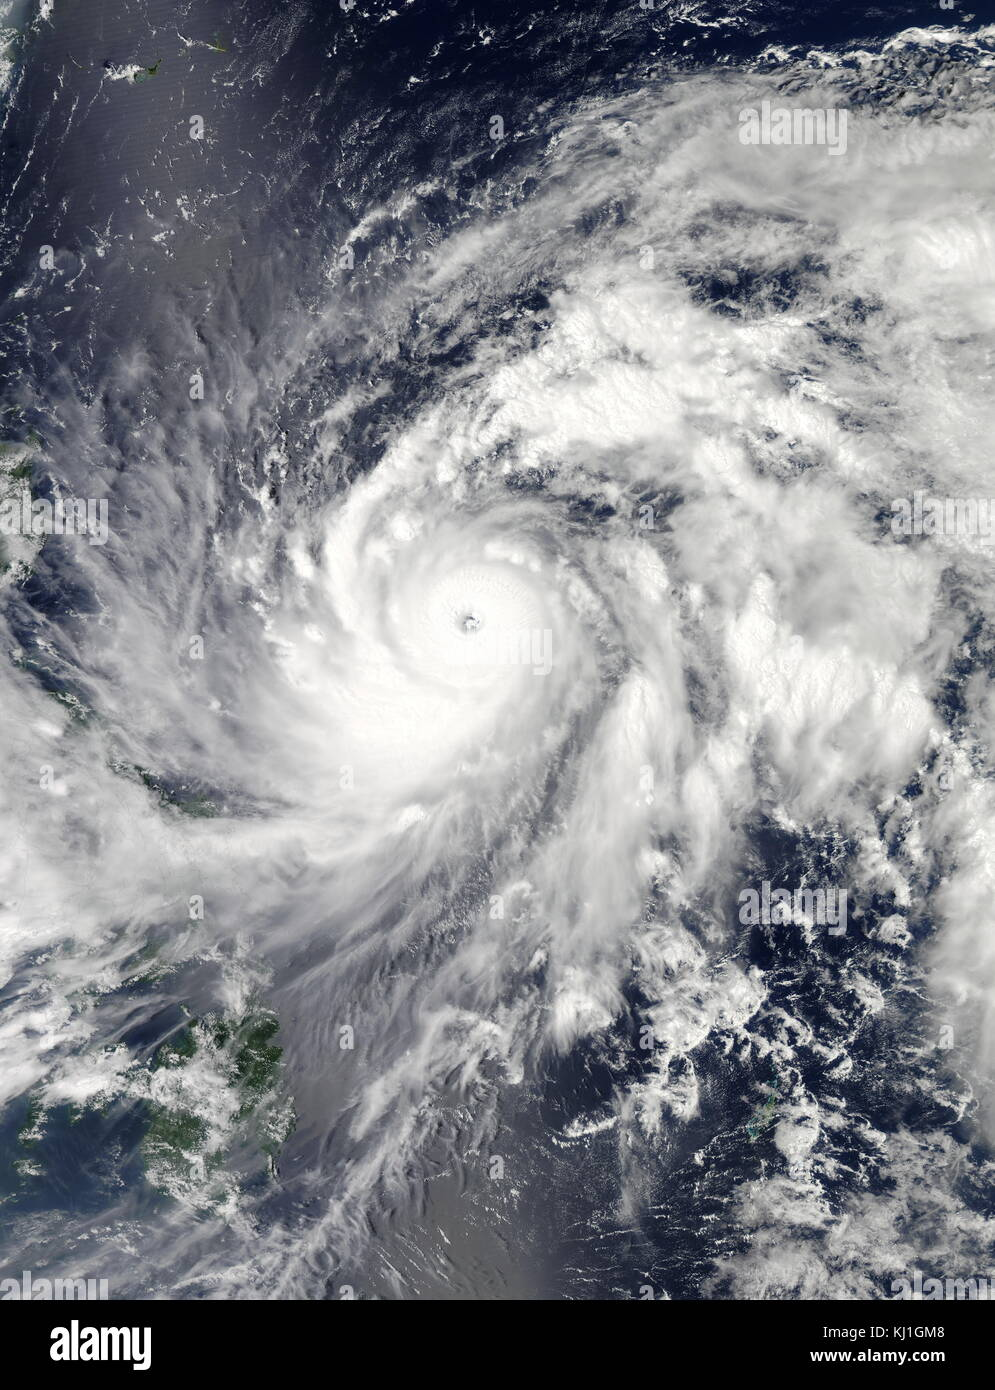 Typhoon Sanba, known in the Philippines as Typhoon Karen, was the strongest tropical cyclone worldwide in 2012. - Stock Image